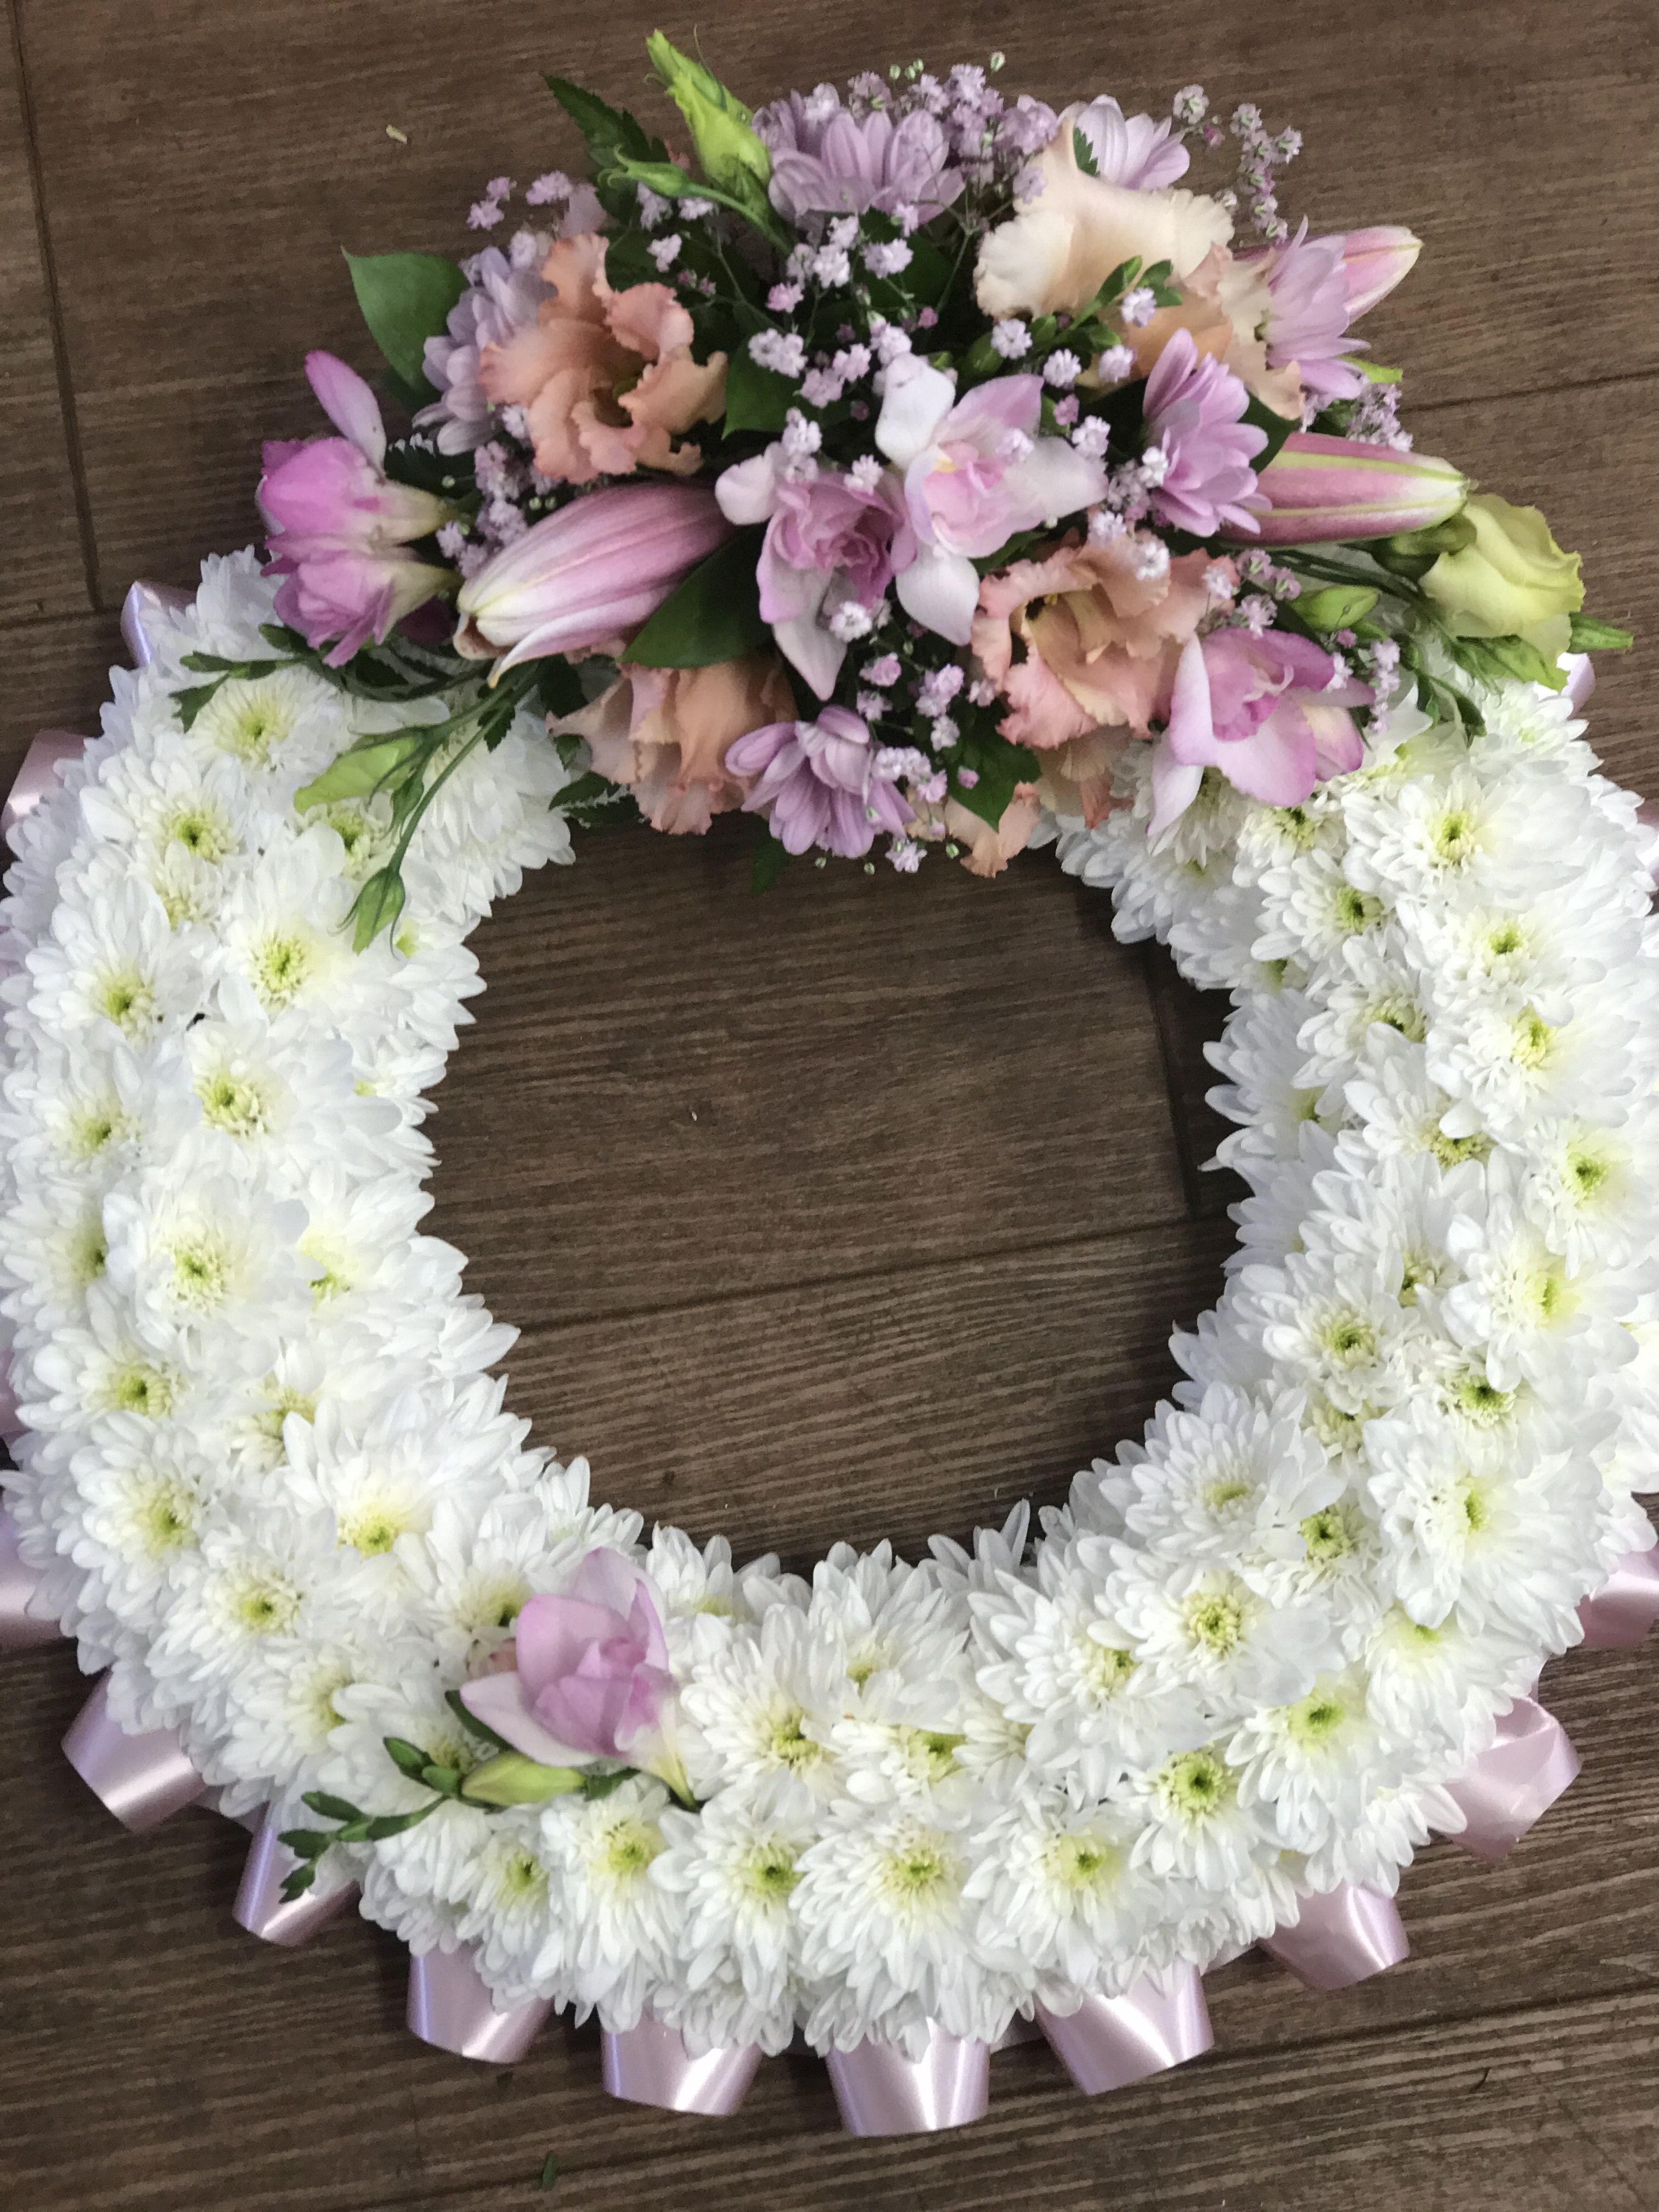 Pin by the little flower shop on funerals pinterest explore these ideas and more izmirmasajfo Images